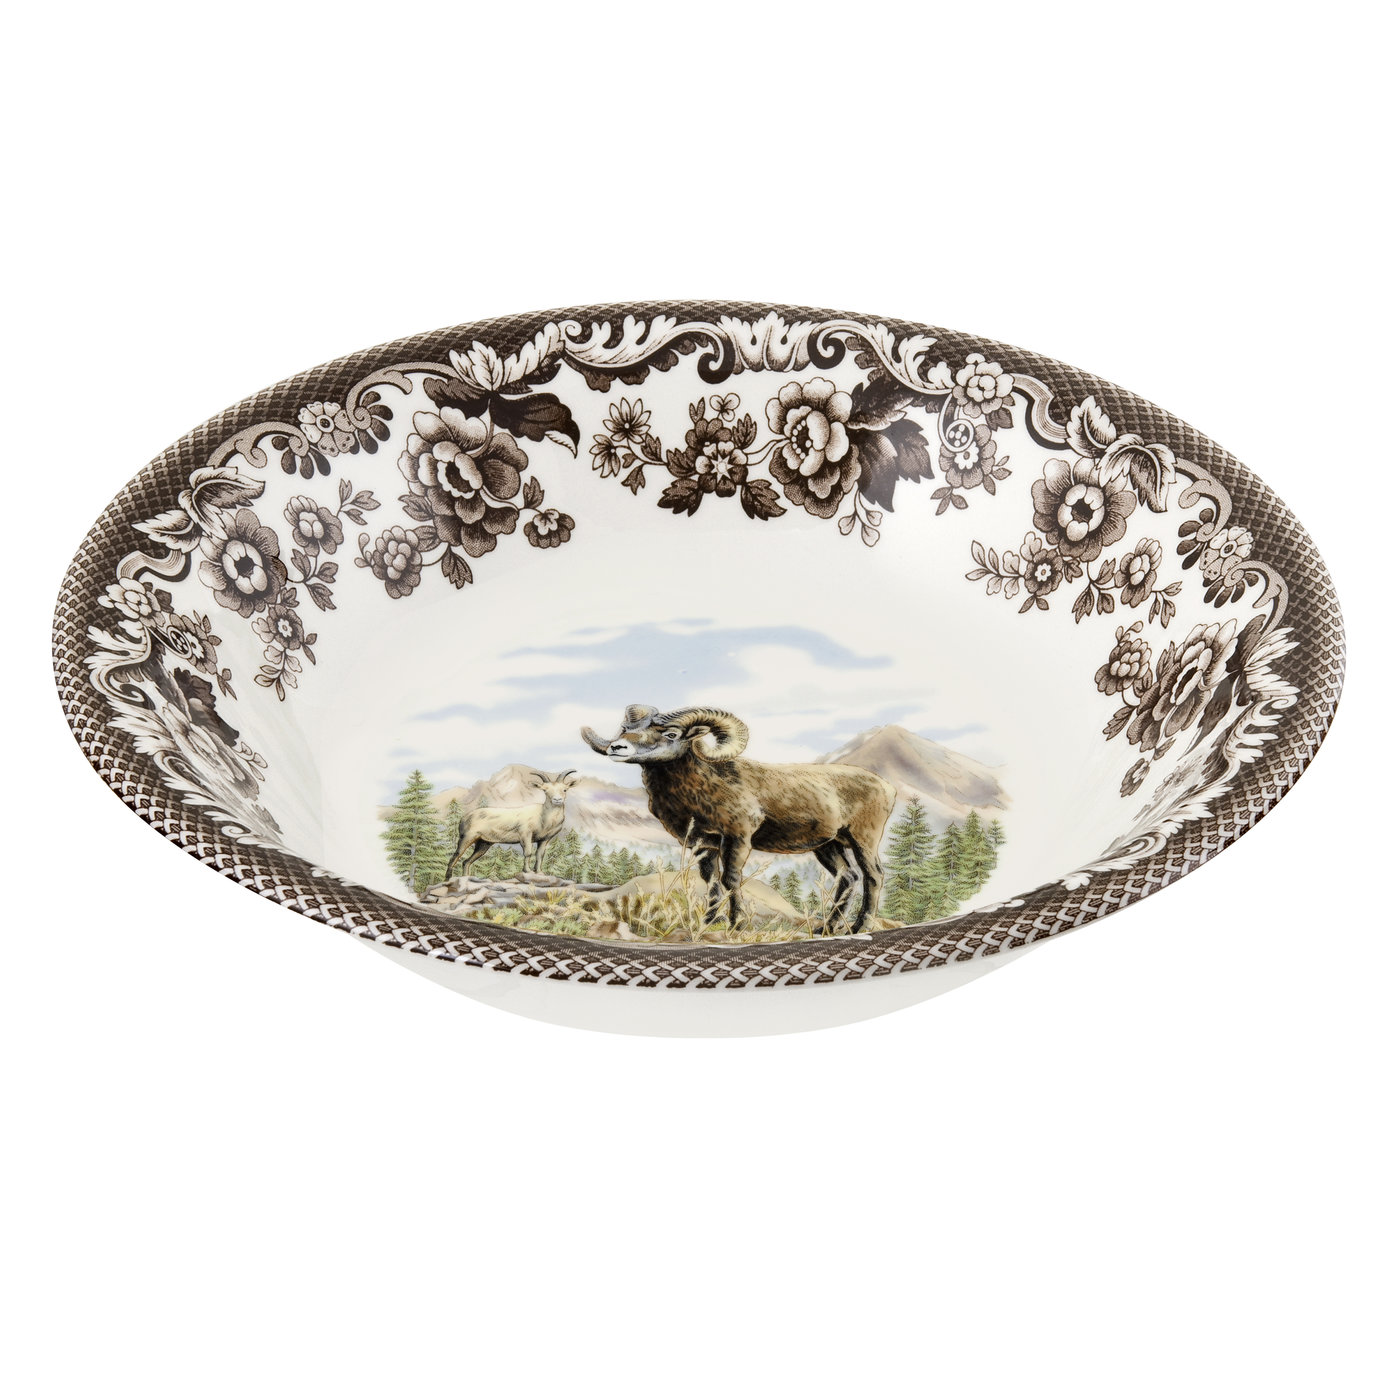 Spode Woodland Ascot Cereal Bowl 8 Inch (Bighorn Sheep) image number 0